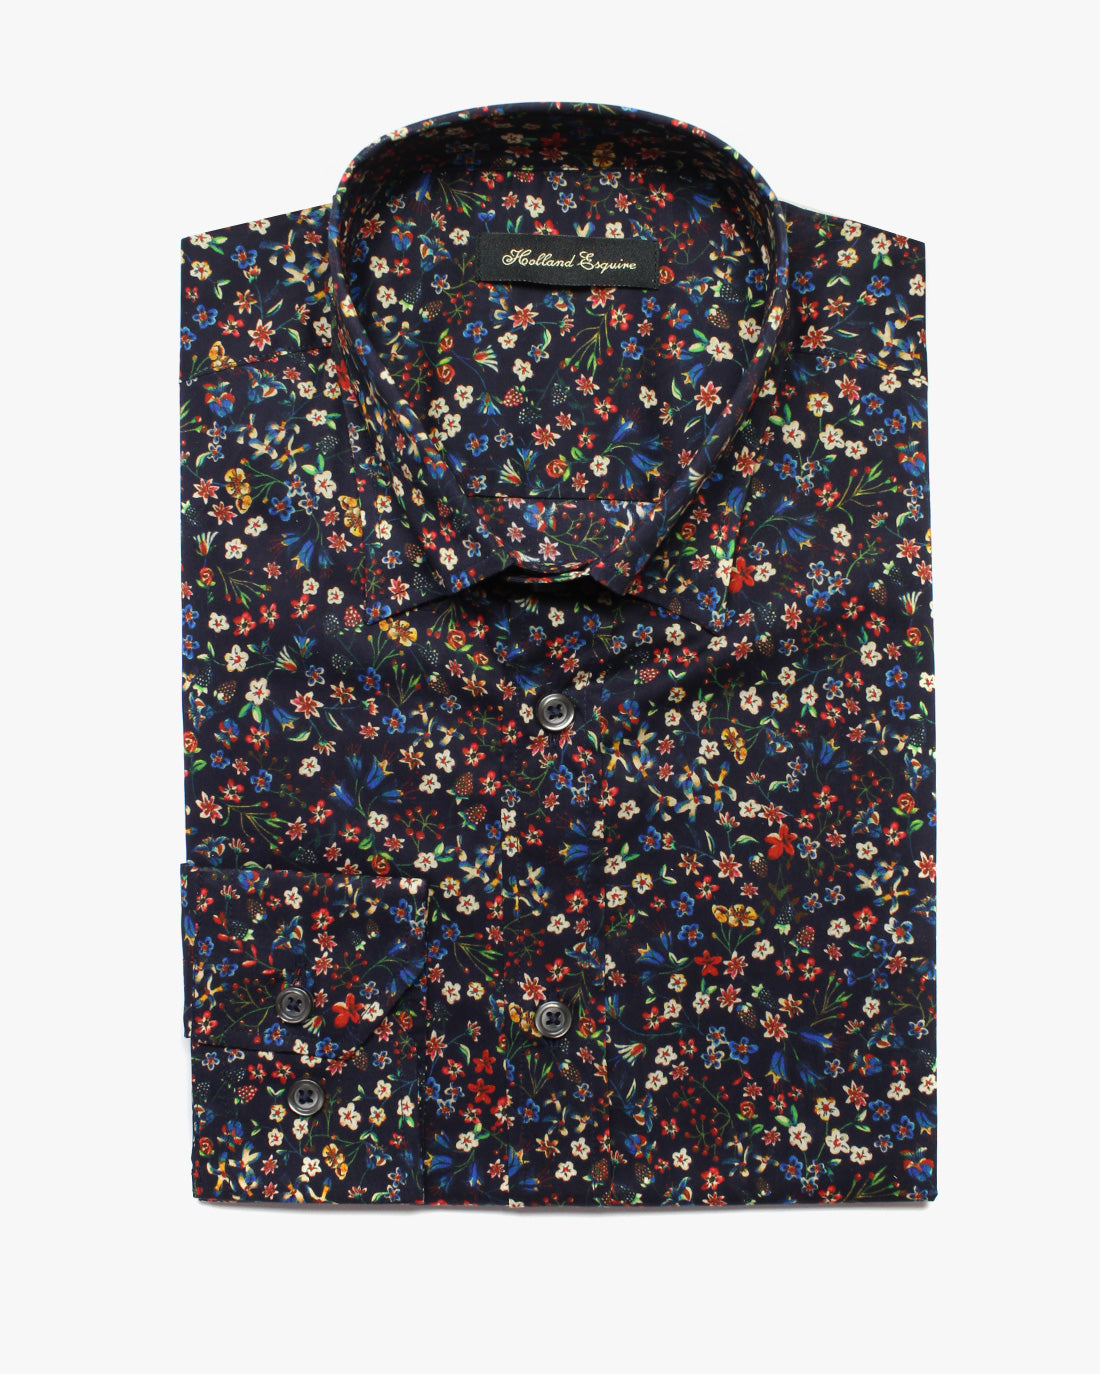 Black Liberty Posy Button Under Shirt - Holland Esquire